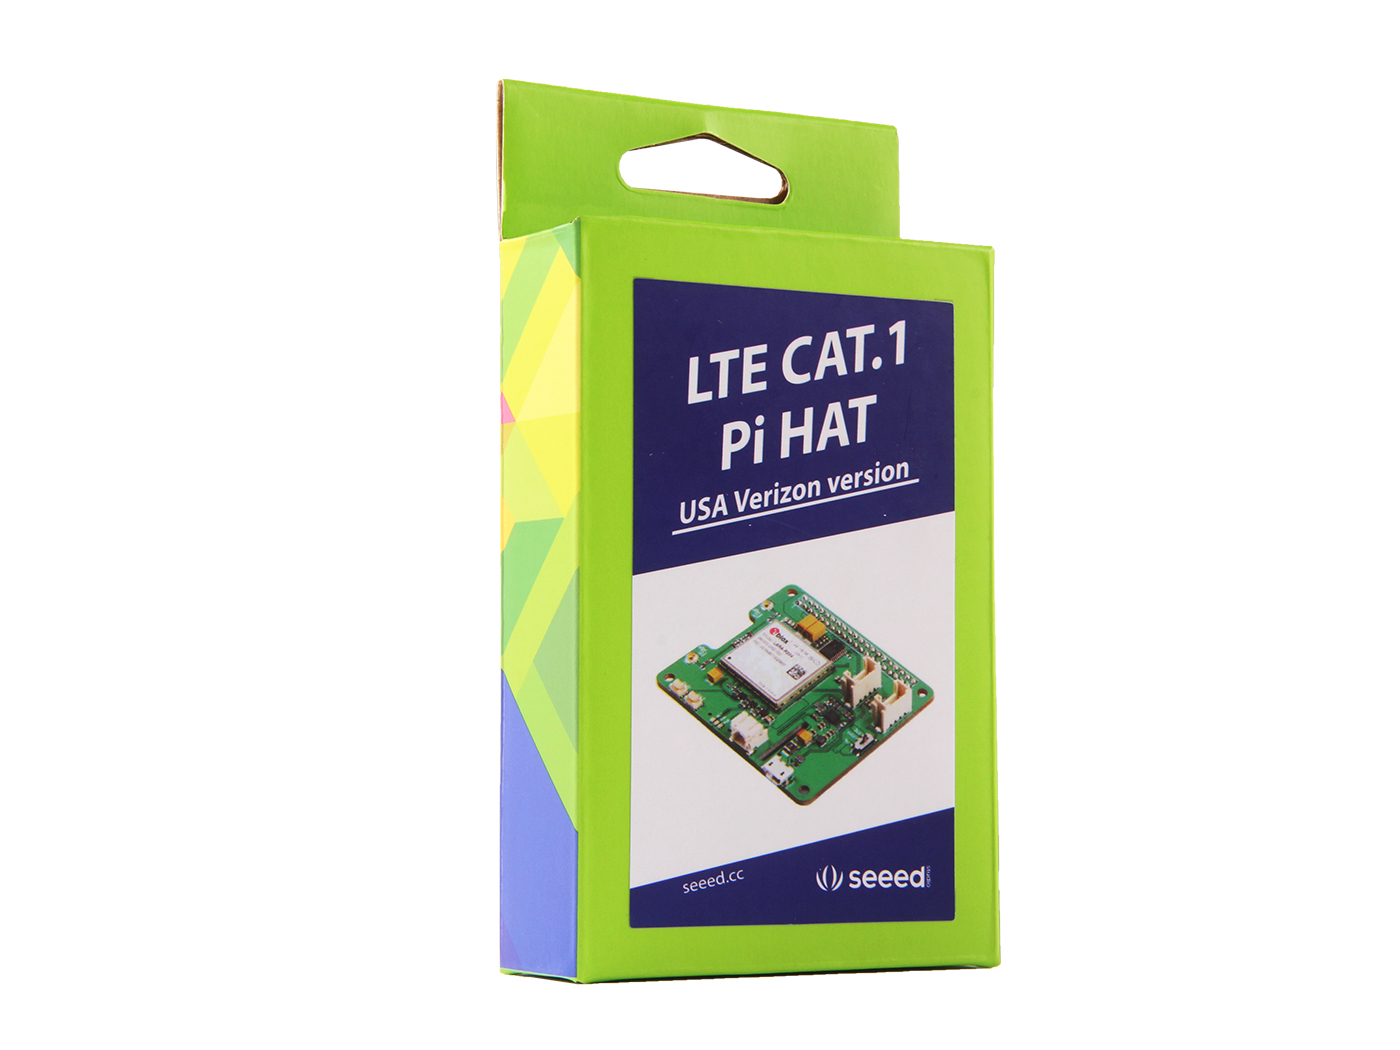 LTE Cat 1 Pi HAT (USA - VZW)